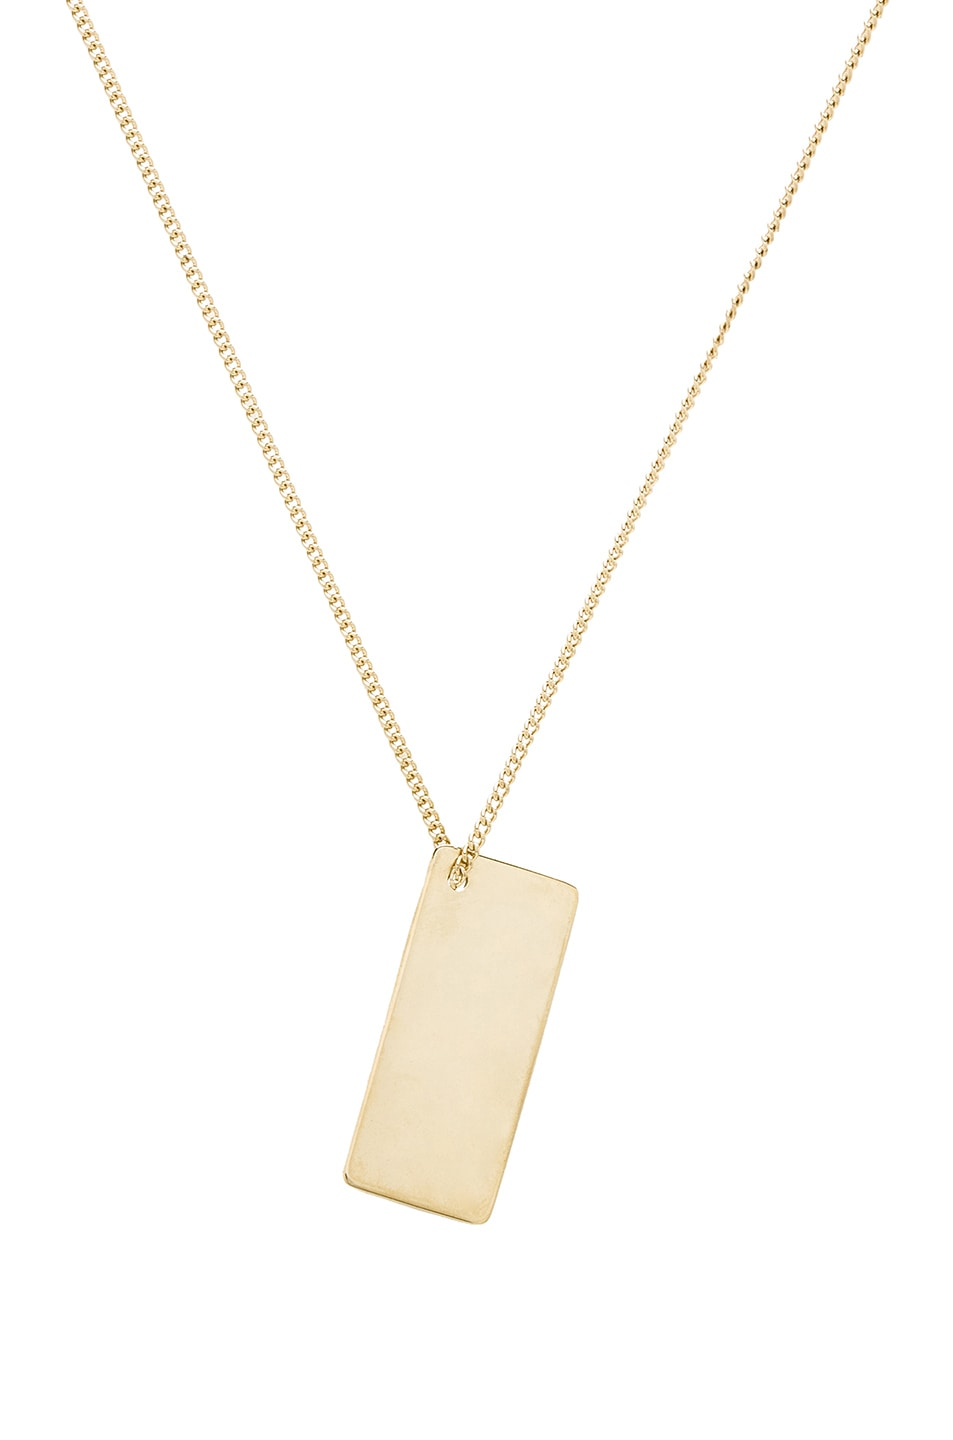 apc jewelry p c brass raa accessories goldtone men wwuk necklace rob a meacc